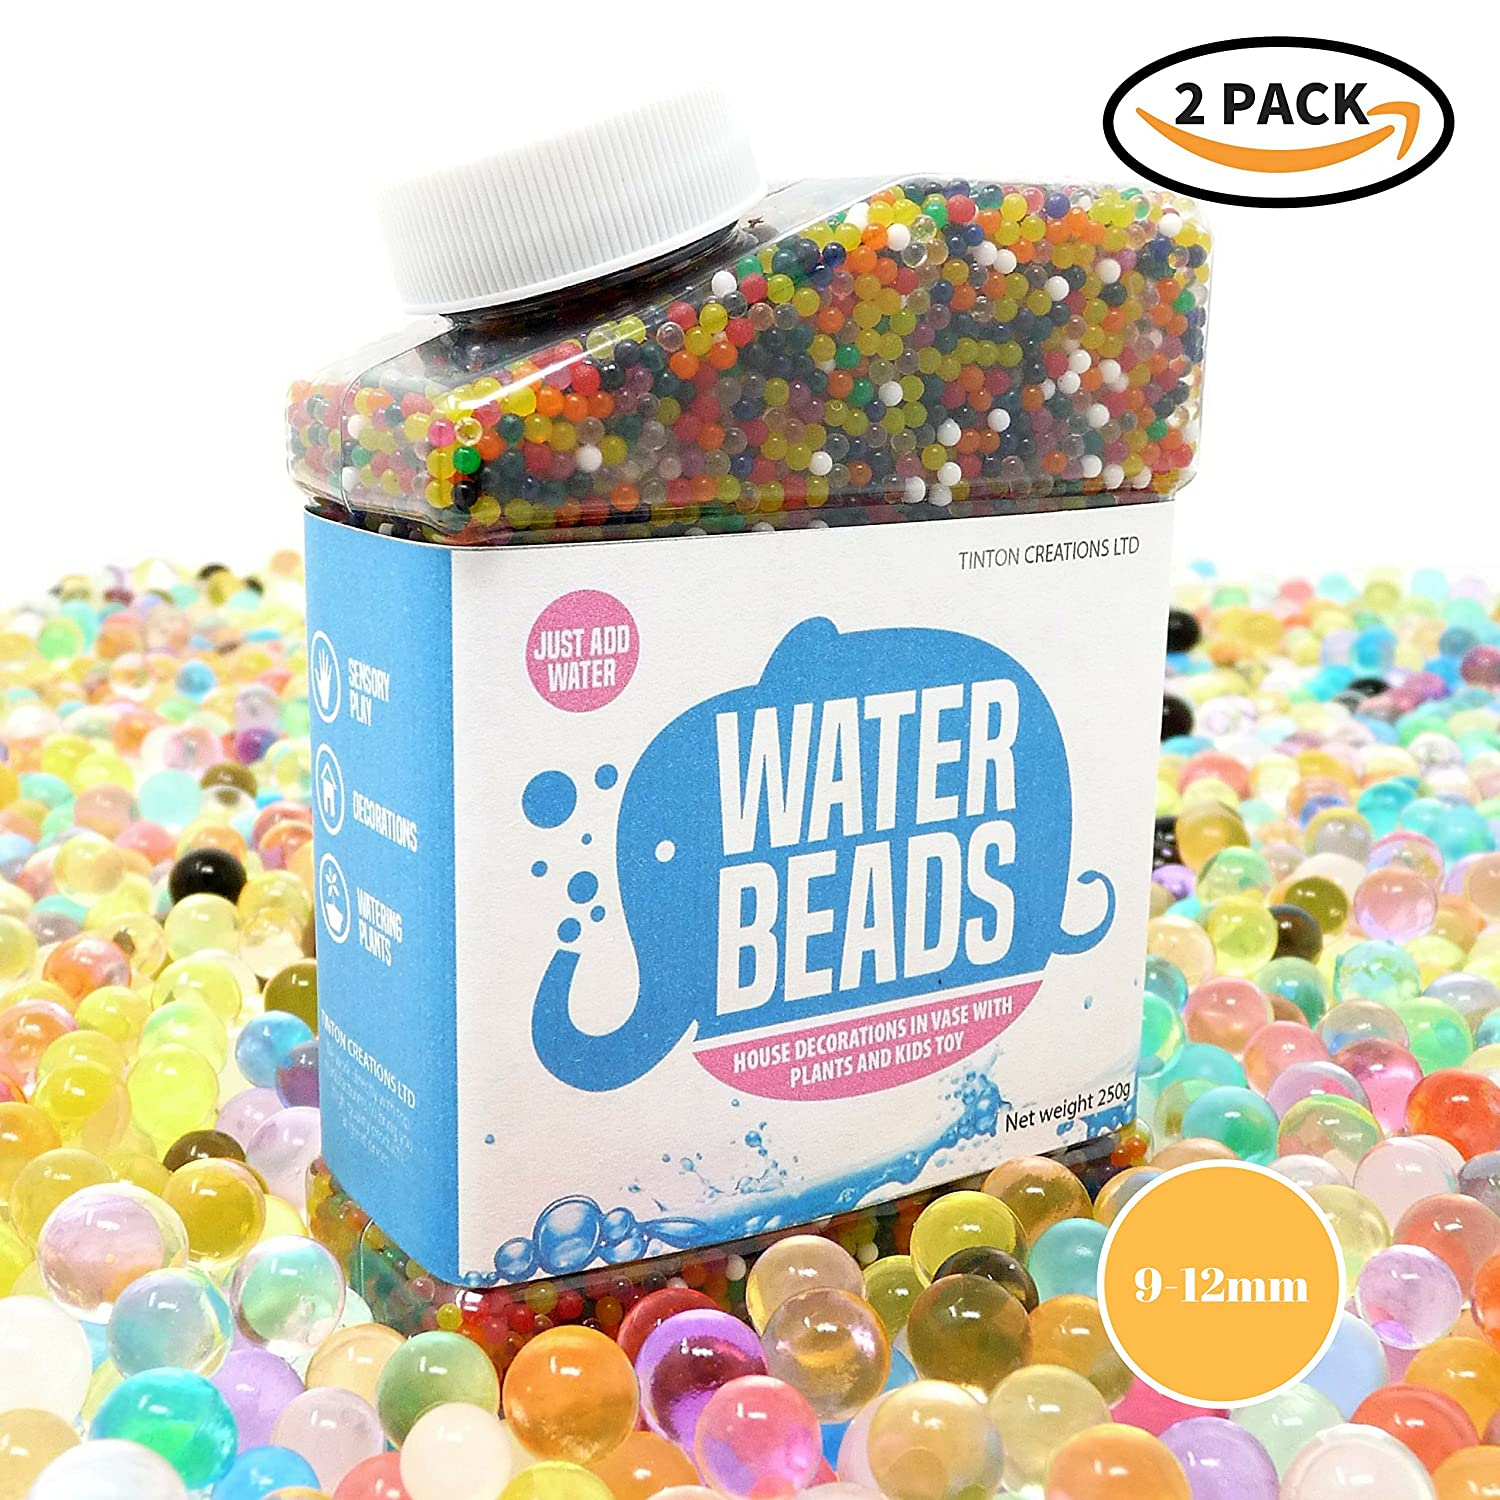 2 X Pack ~ Water Beads Rainbow Mix ~ Vibrant Colours ~ 14oz (80,000 beads) for Orbeez Spa Refill, Sensory Toy, Kids Bath Toy, Vases, Plants, Wedding and Home Decoration ~ 9-12mm Diameter Tinton Creations